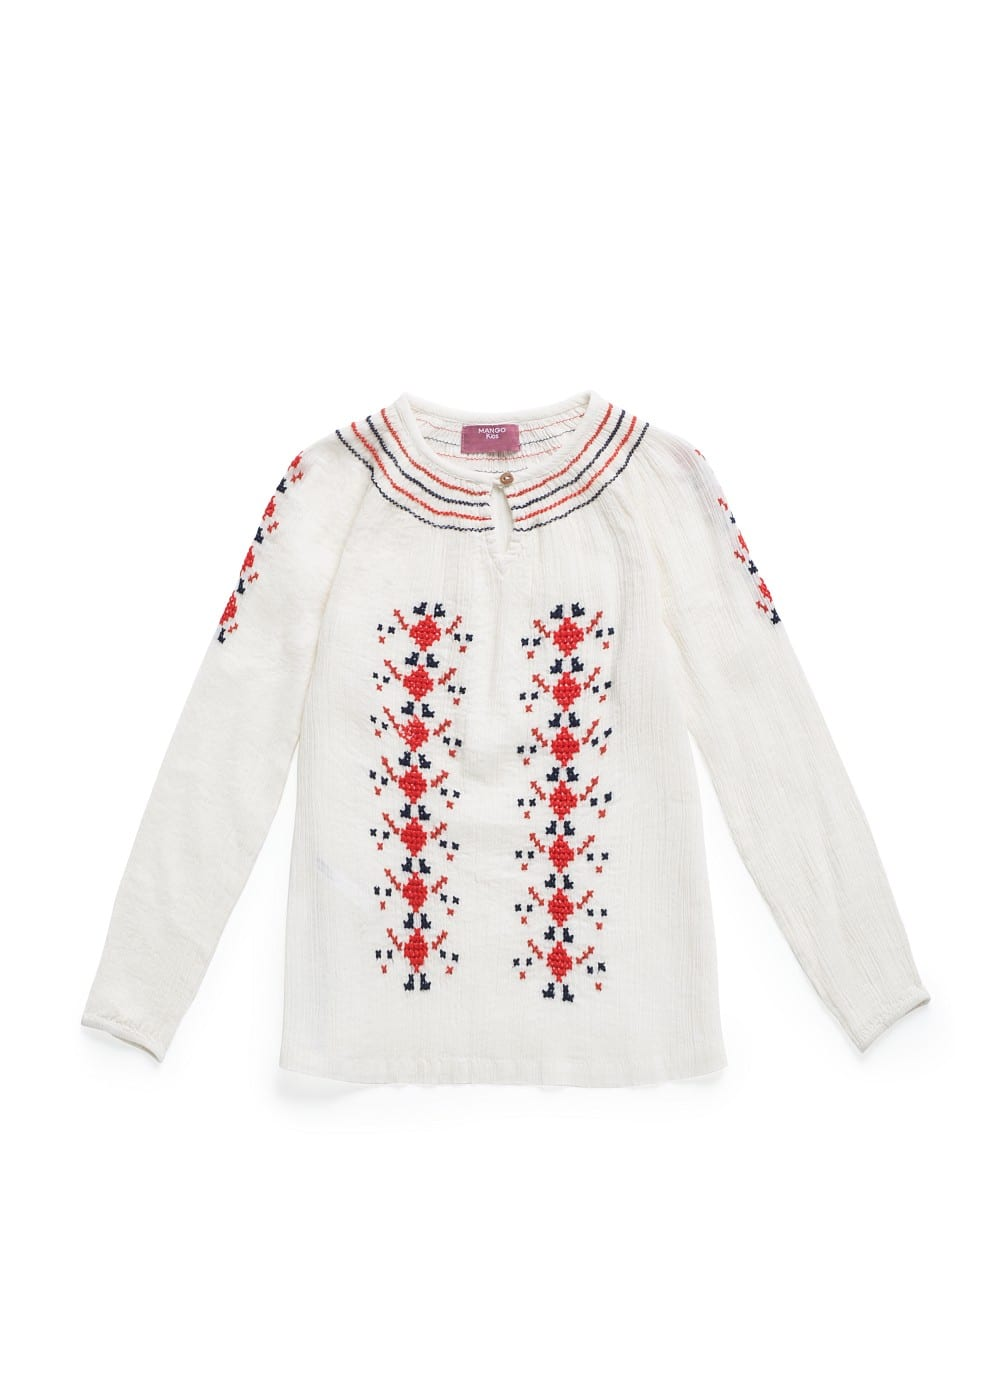 CROSS-STITCH EMBROIDERY BLOUSE